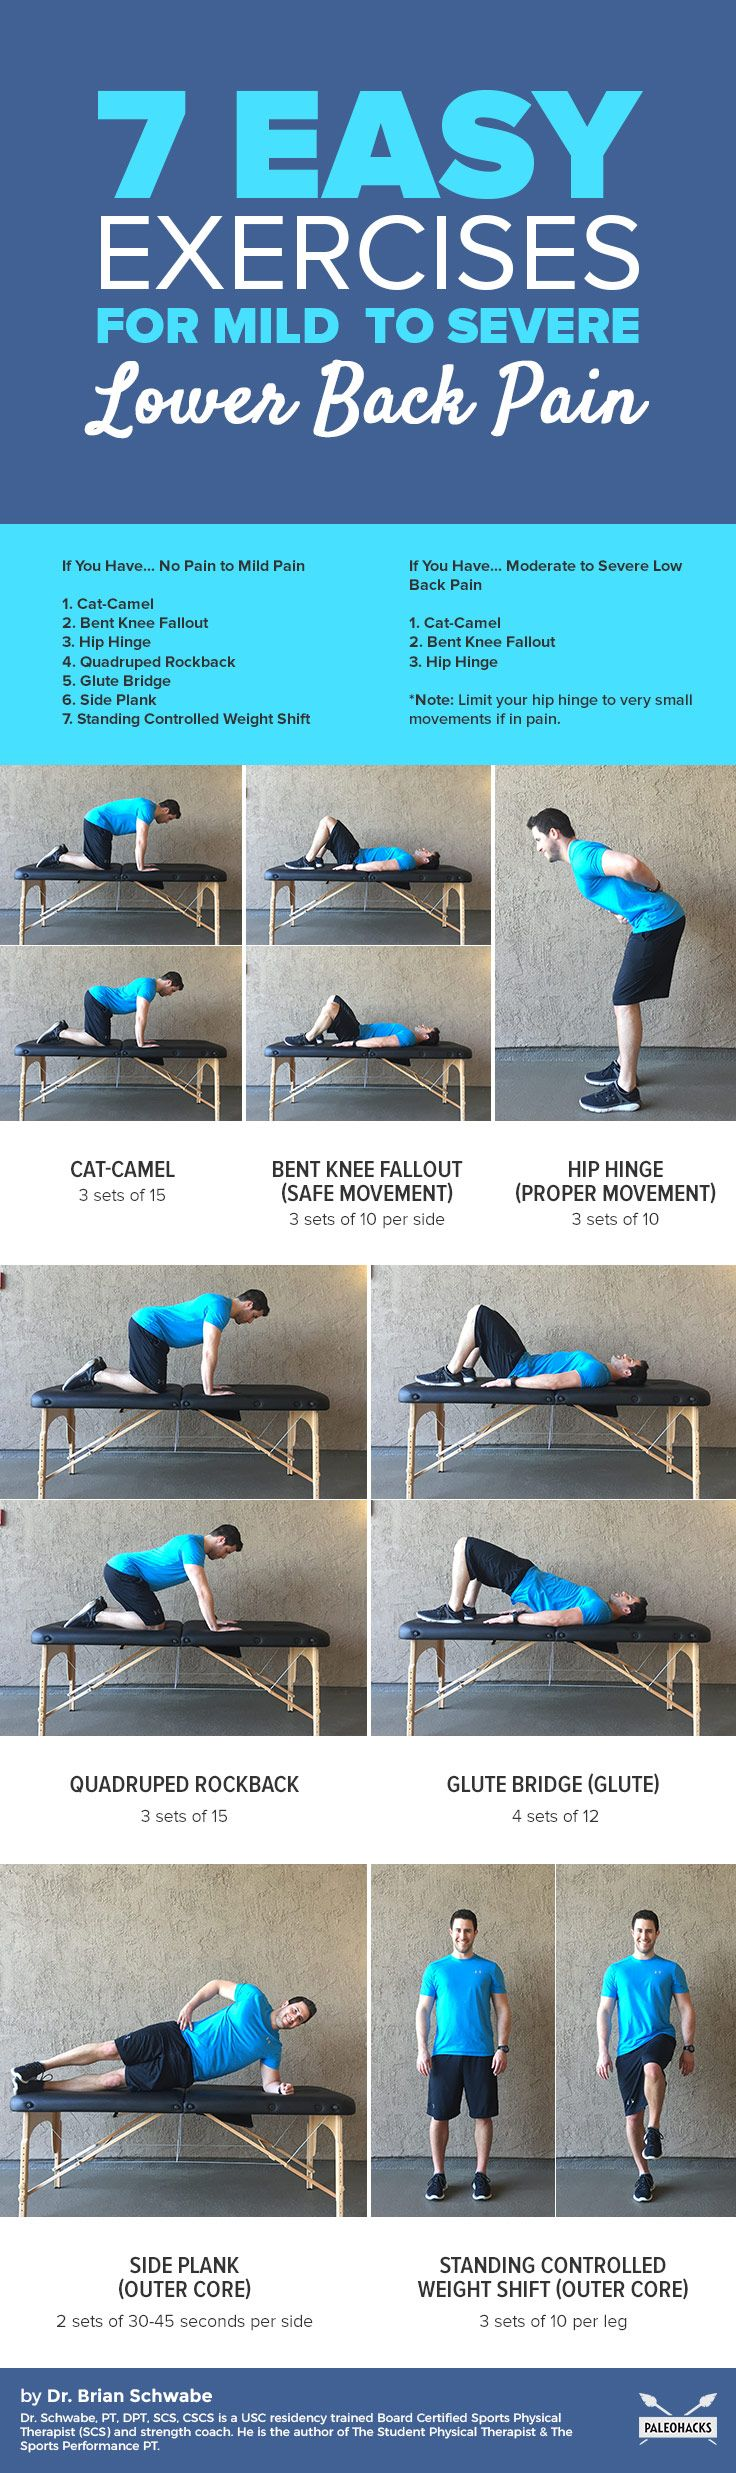 Don't let lower back pain stop you! Get the full workout here: http://paleo.co/lowerbackexercises